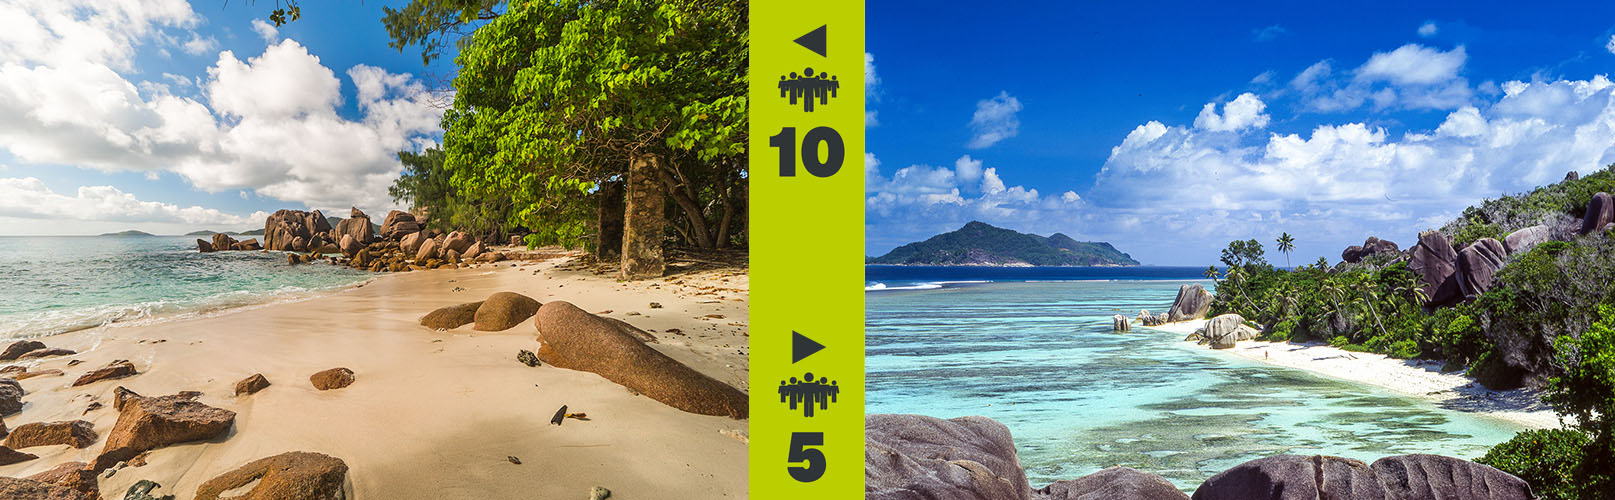 seychelles beach rating - the solitude of a beach